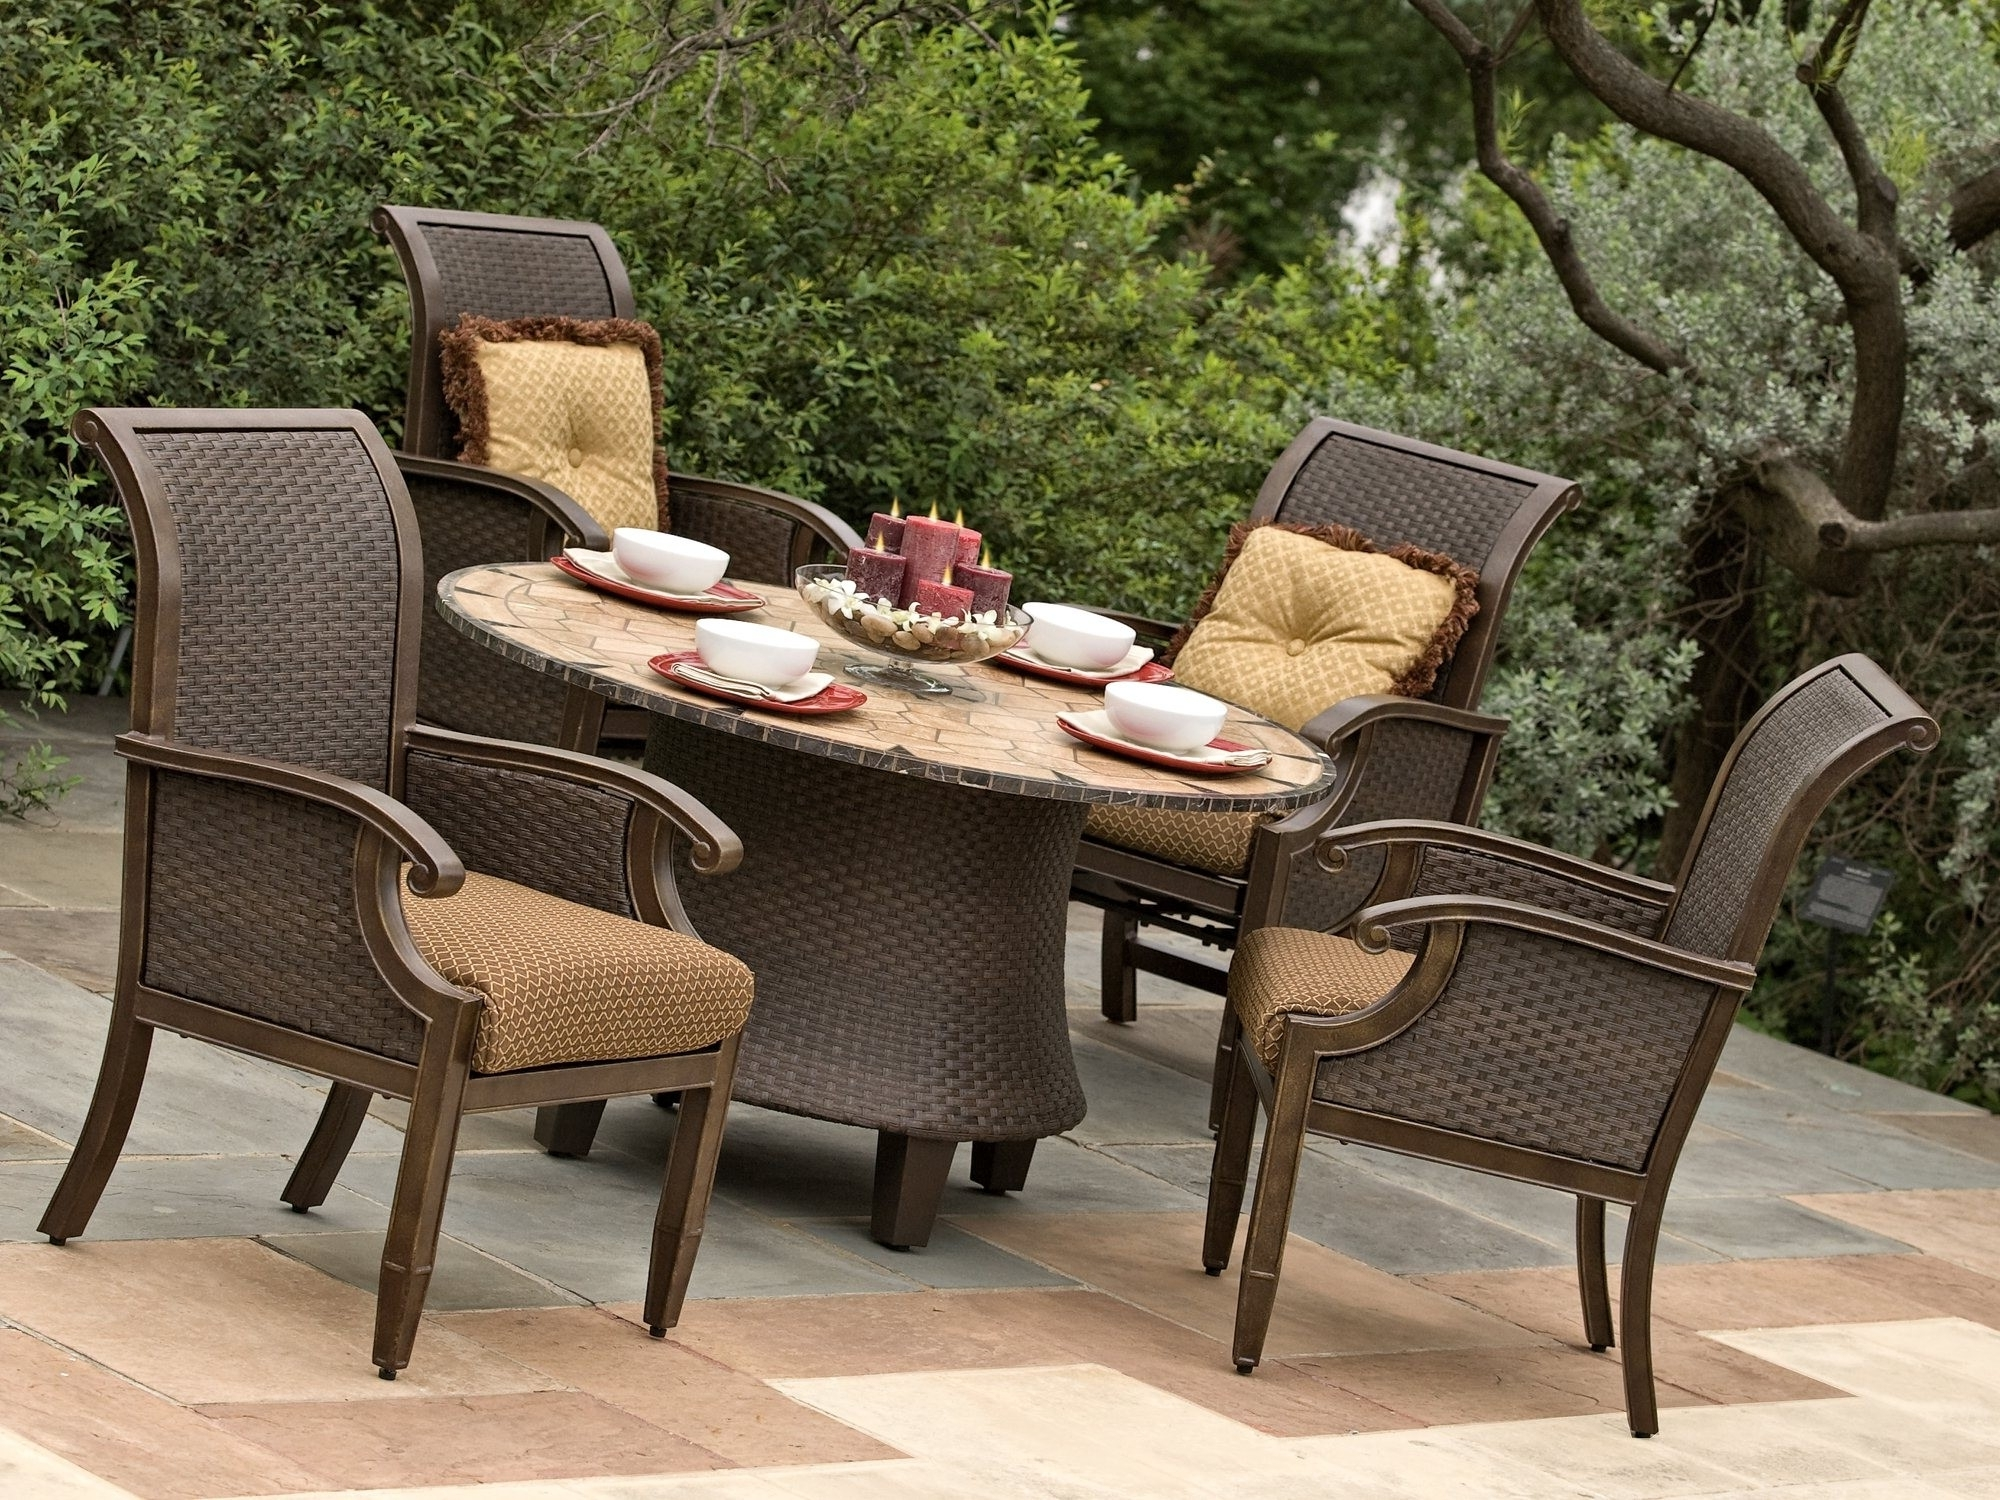 2019 Marvelous Outdoor Patio Furniture 27 Kor Relaxed Location Dining 923 In Patio Conversation Sets With Dining Table (View 3 of 20)